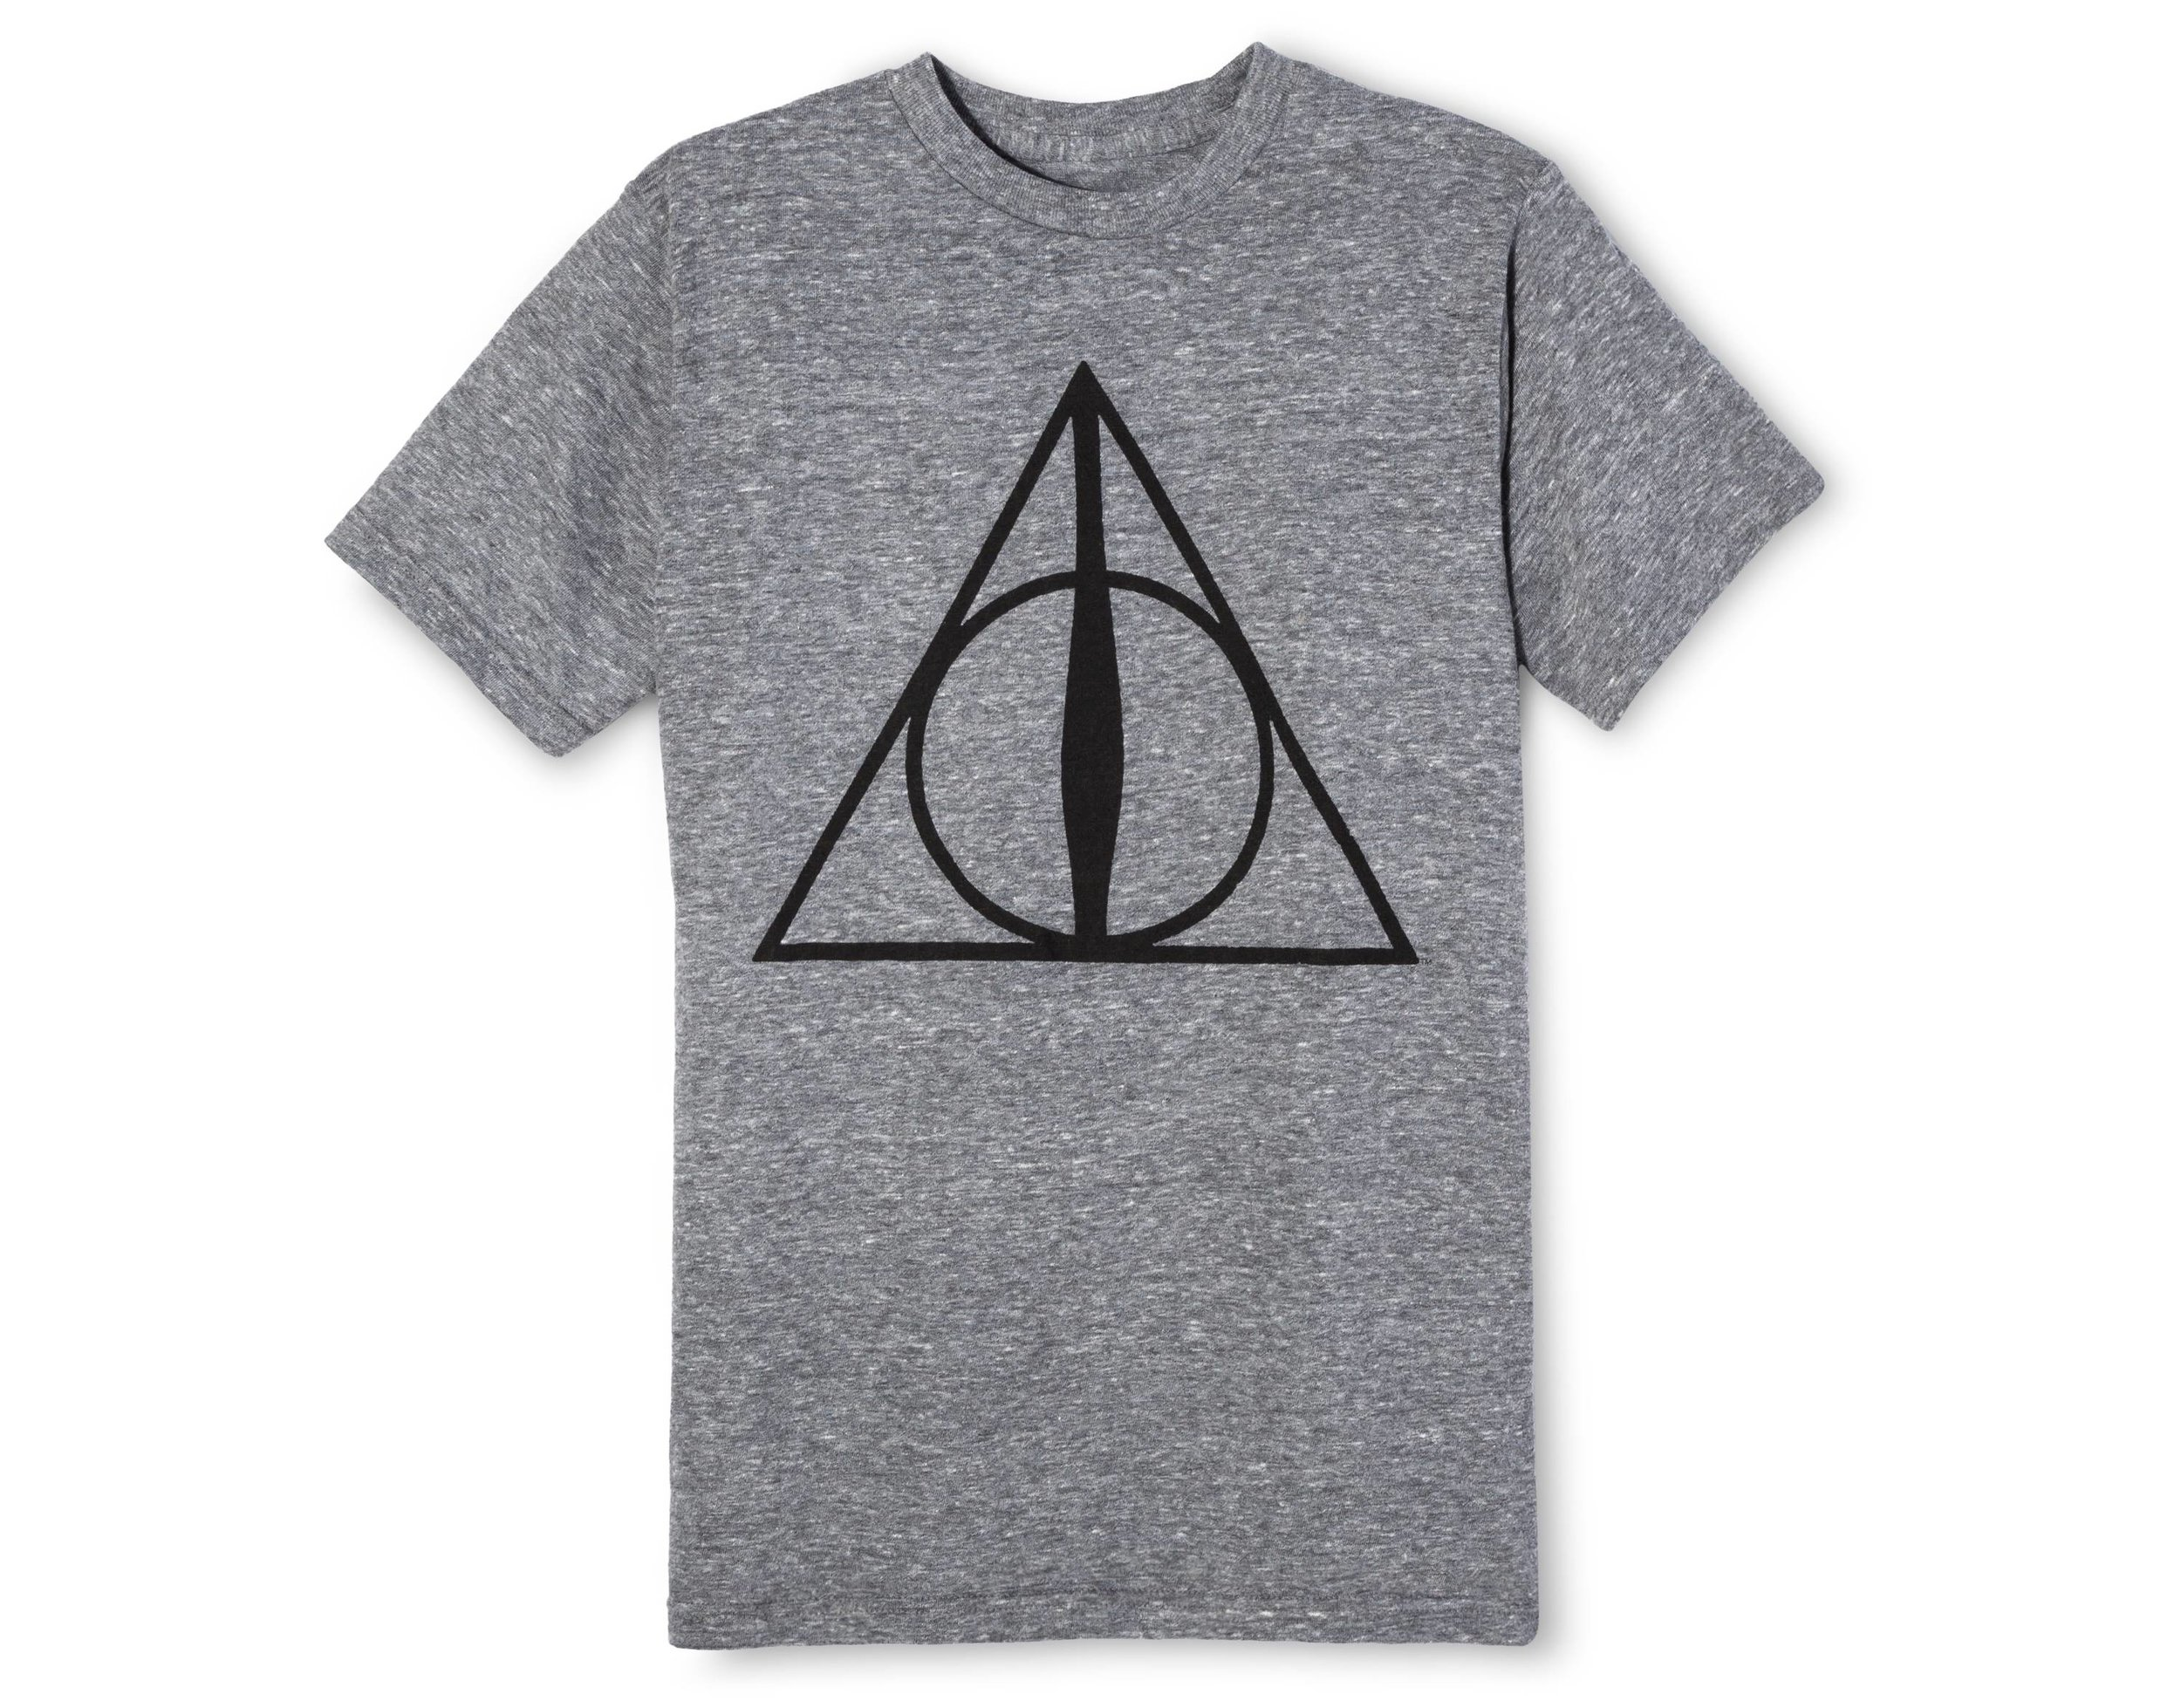 Deathly Hallows Target Shirt.jpg